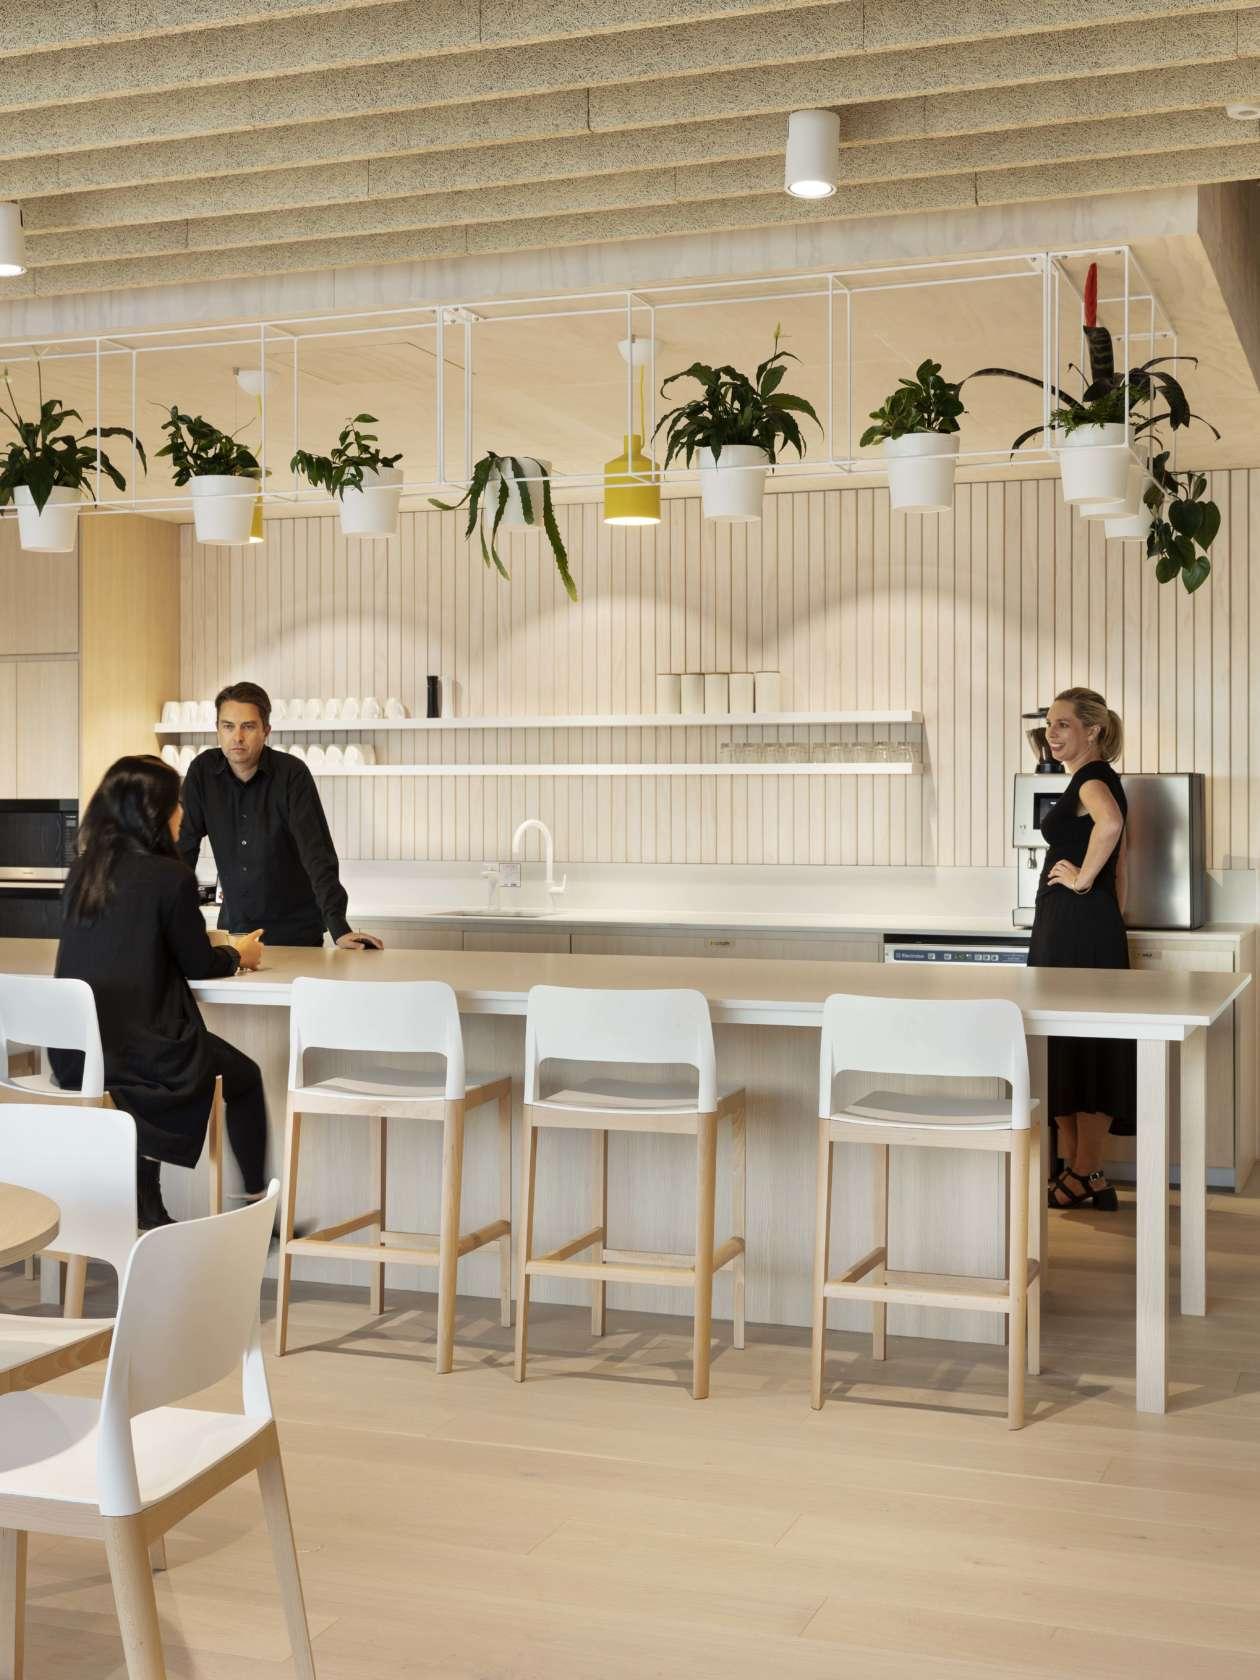 Workplace design must put people first